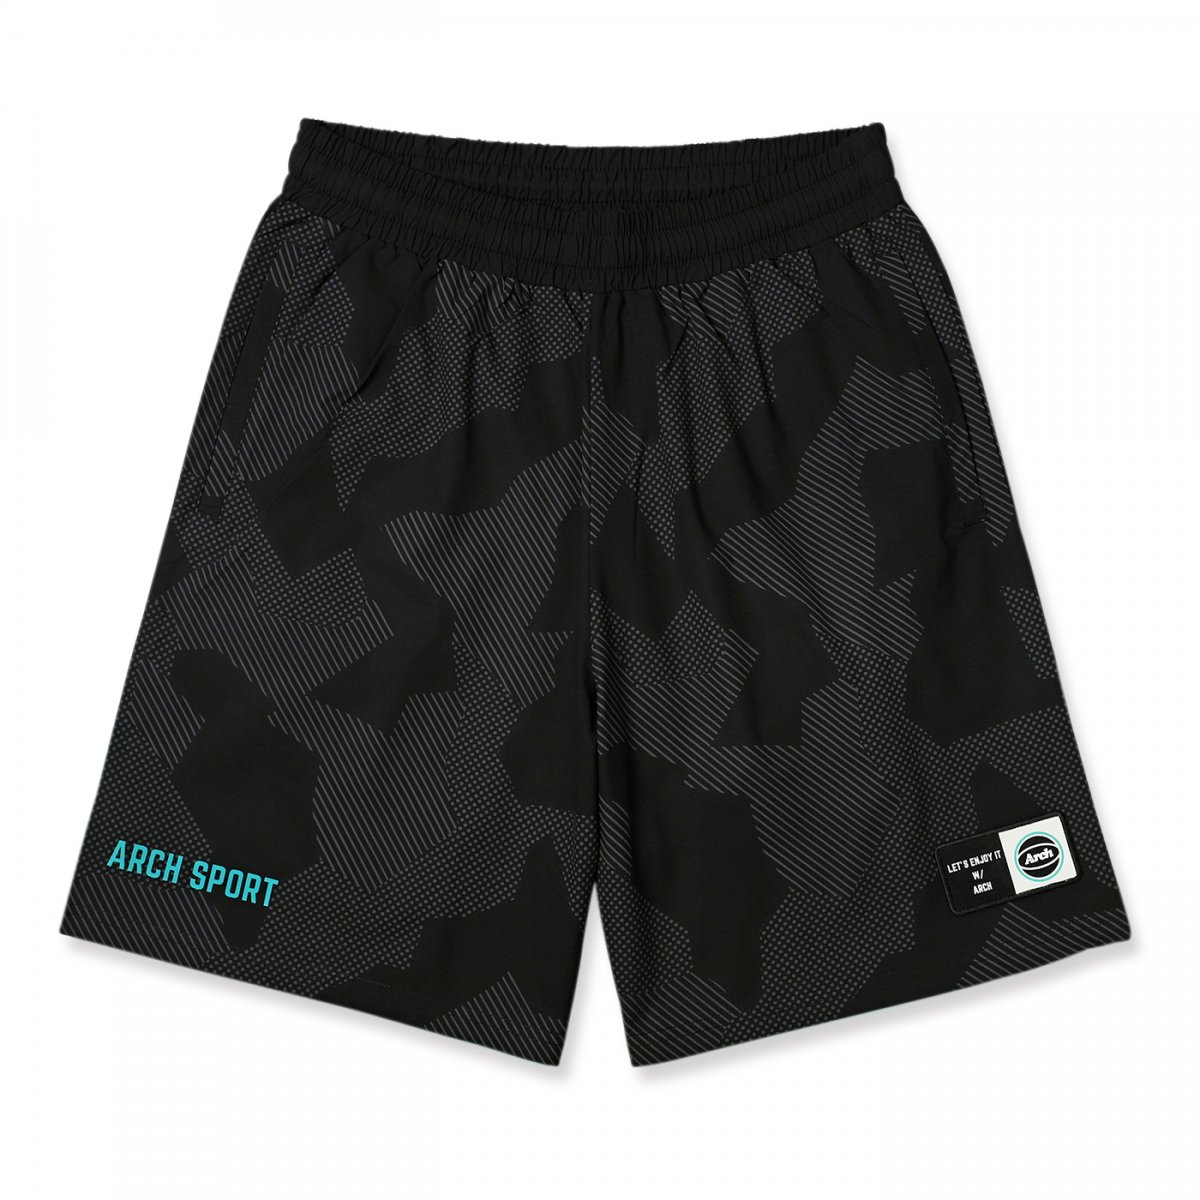 sport patched shorts 【black】